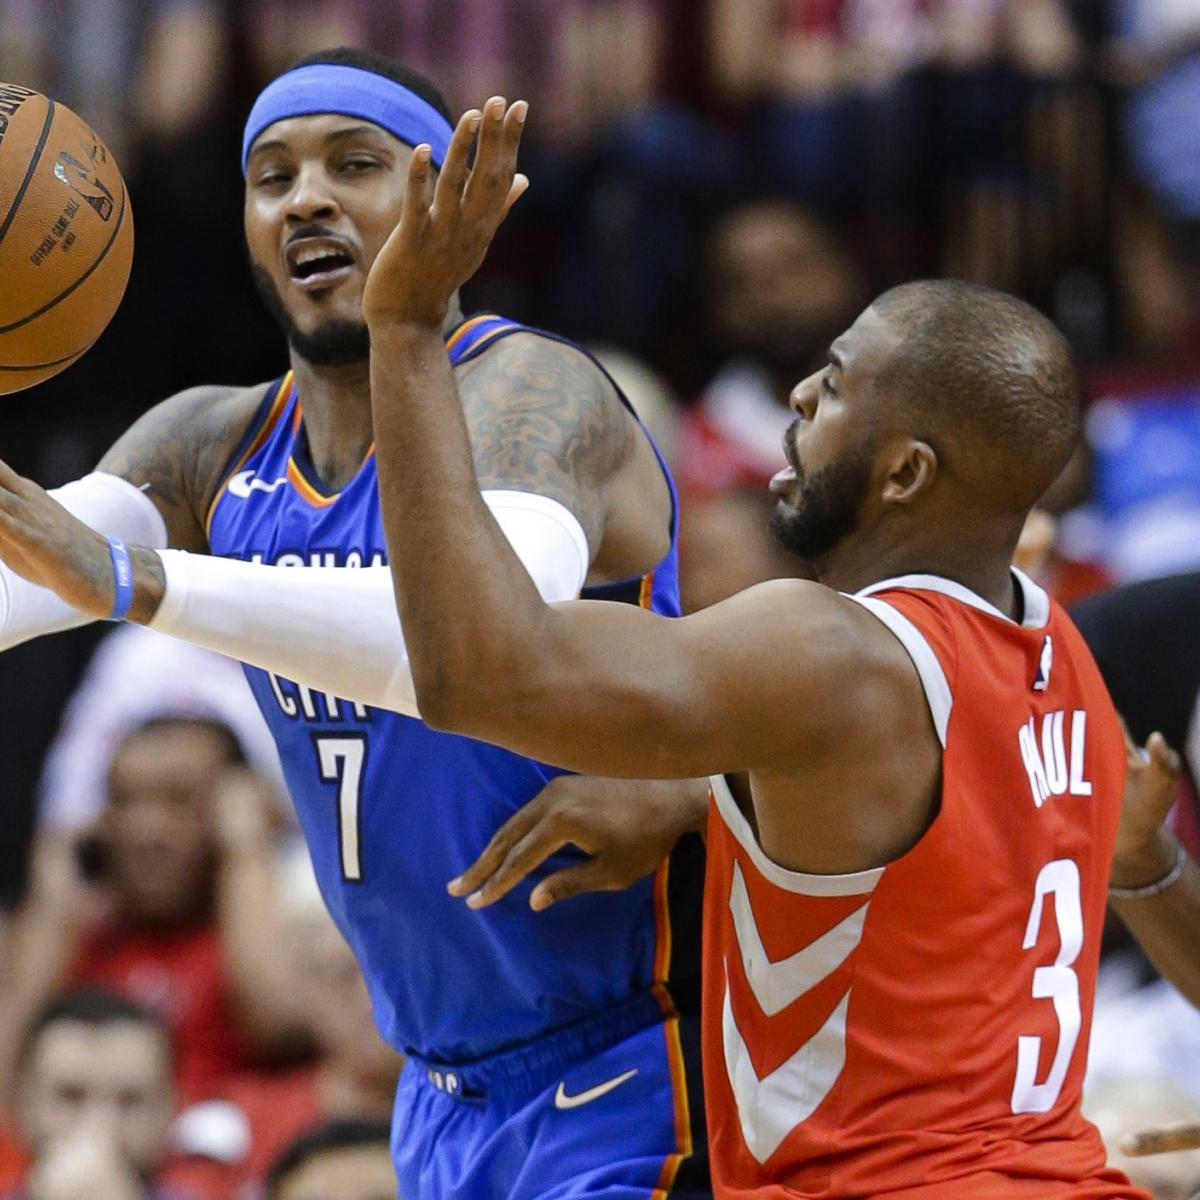 Tuesday NBA Free Agency Roundup: Rockets, Not Heat, Are Best Fit for Melo